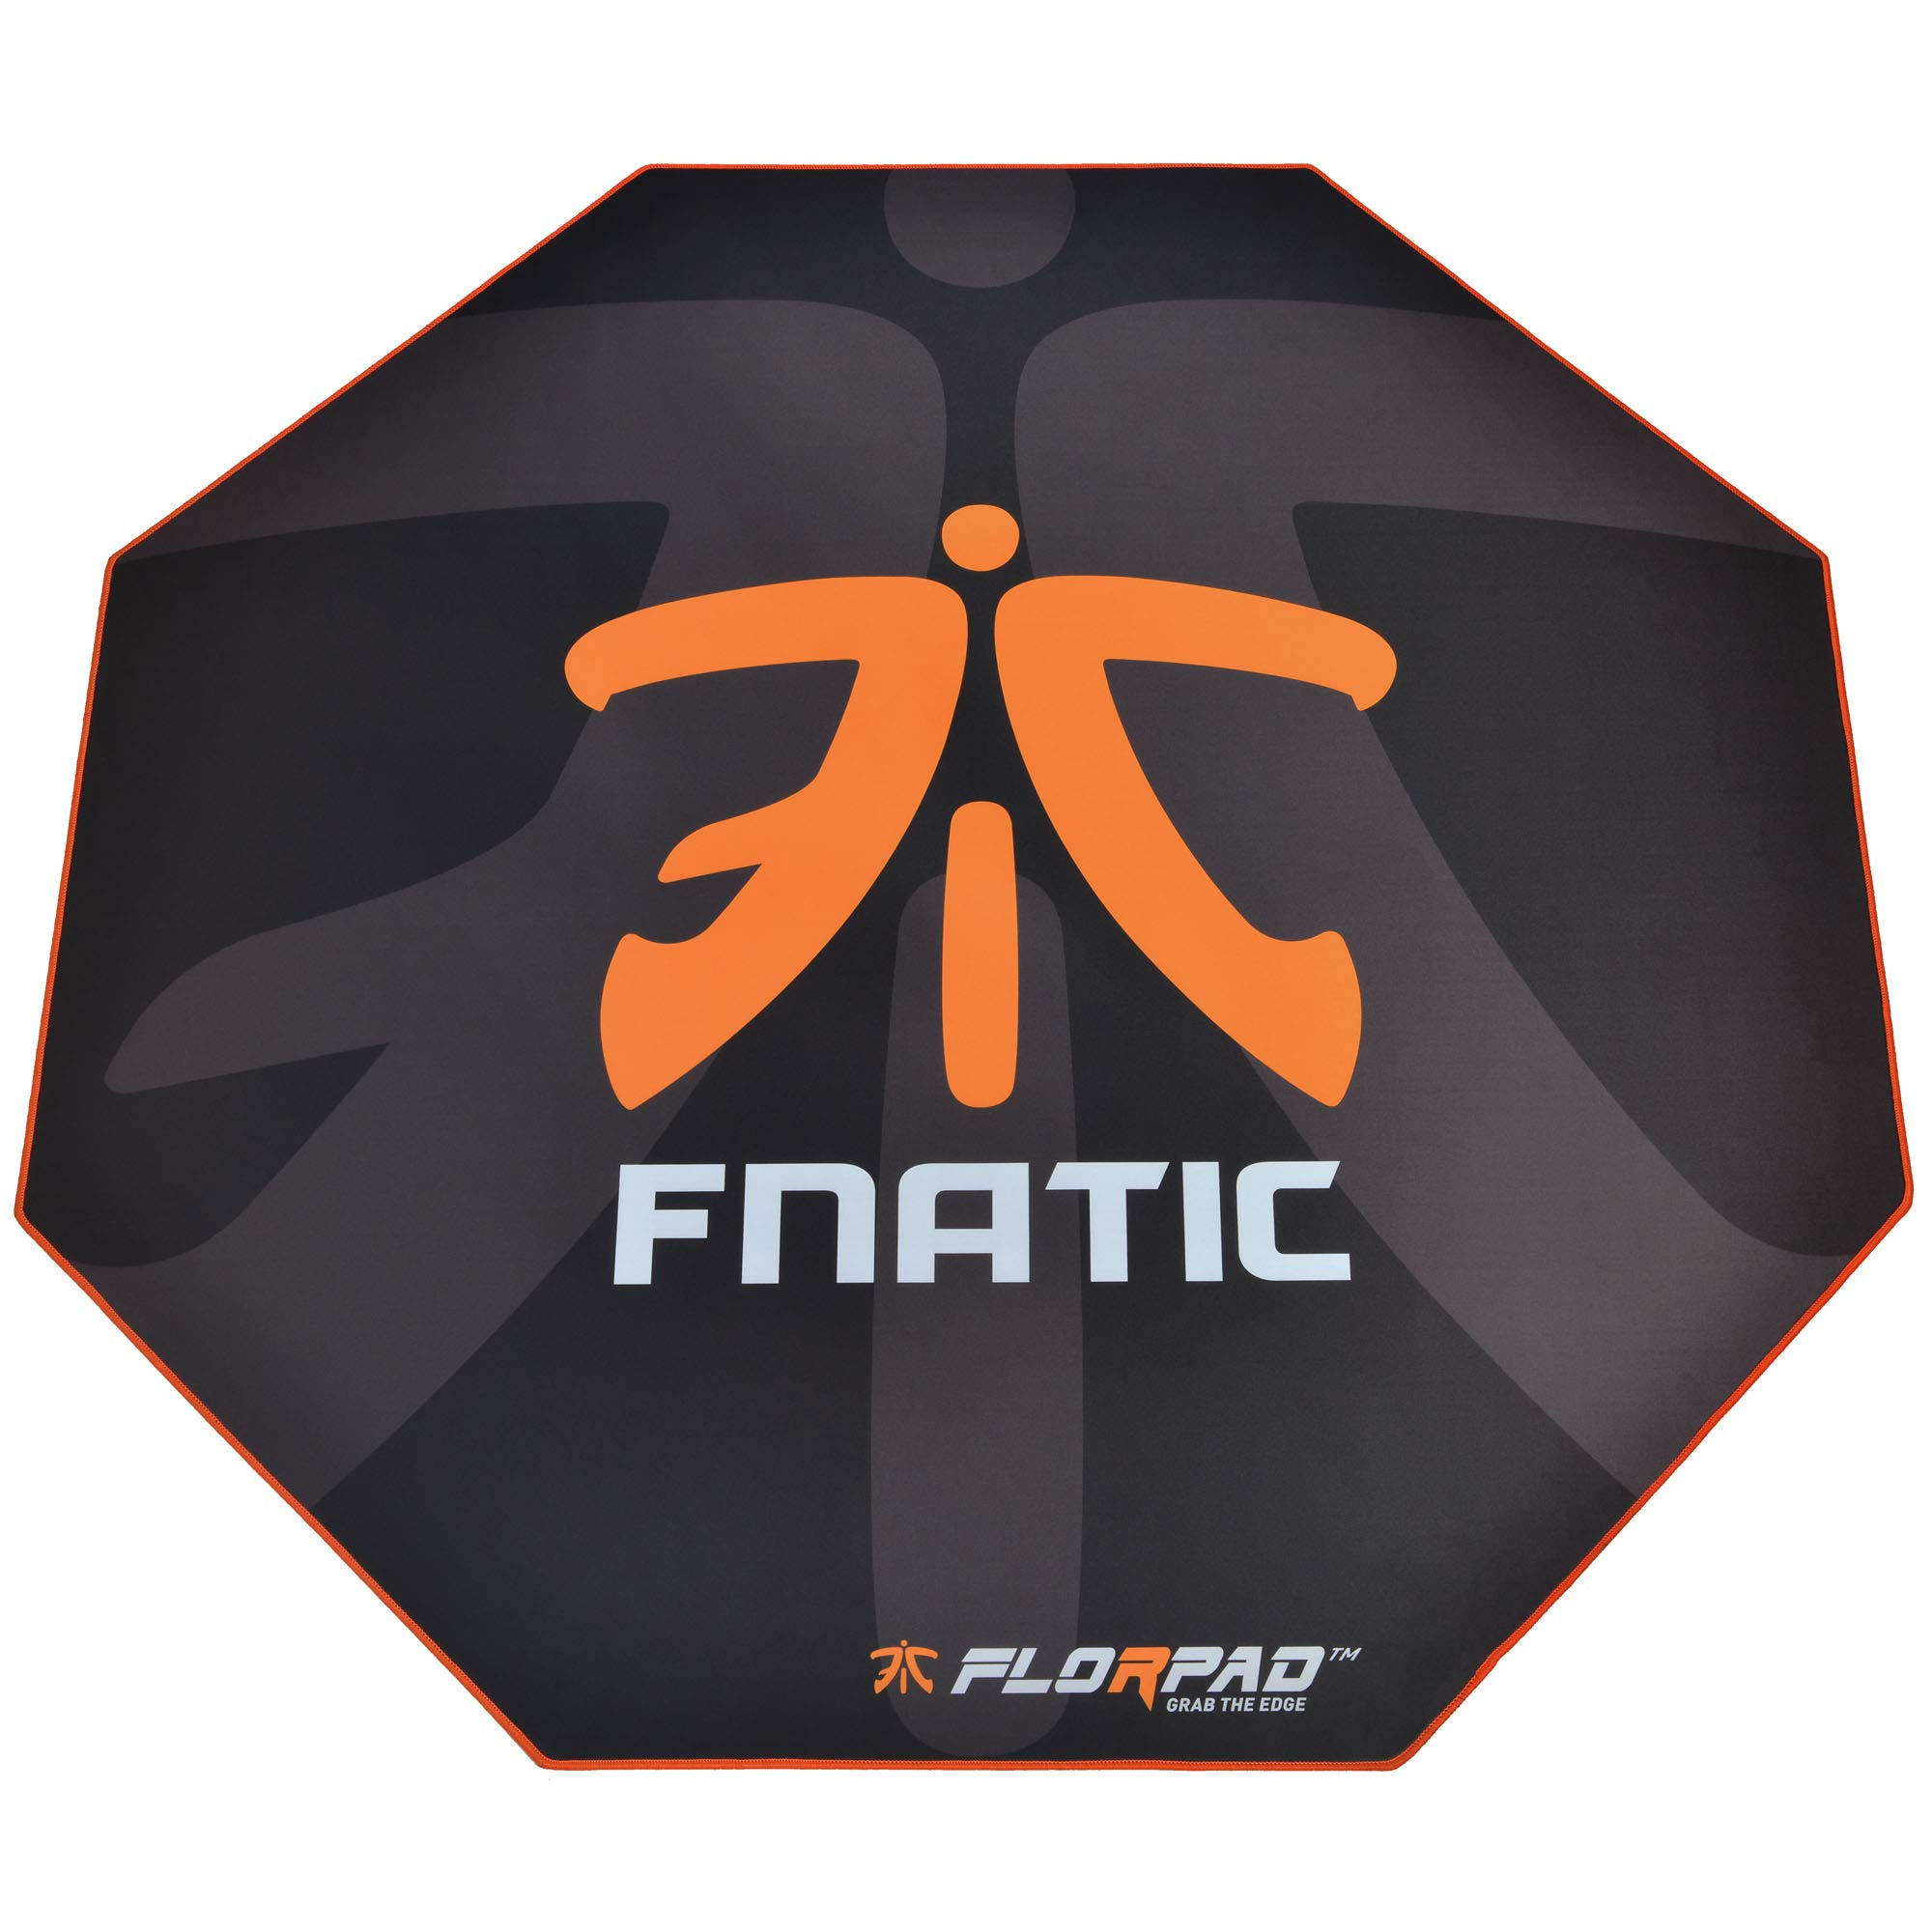 Florpad Fnatic Gaming Office Chair Mat | Protects All Floors | Liquid Resistant | Noise Cancelling | Smooth Surface 45'' x 45'' by FLORPAD GRAB THE EDGE